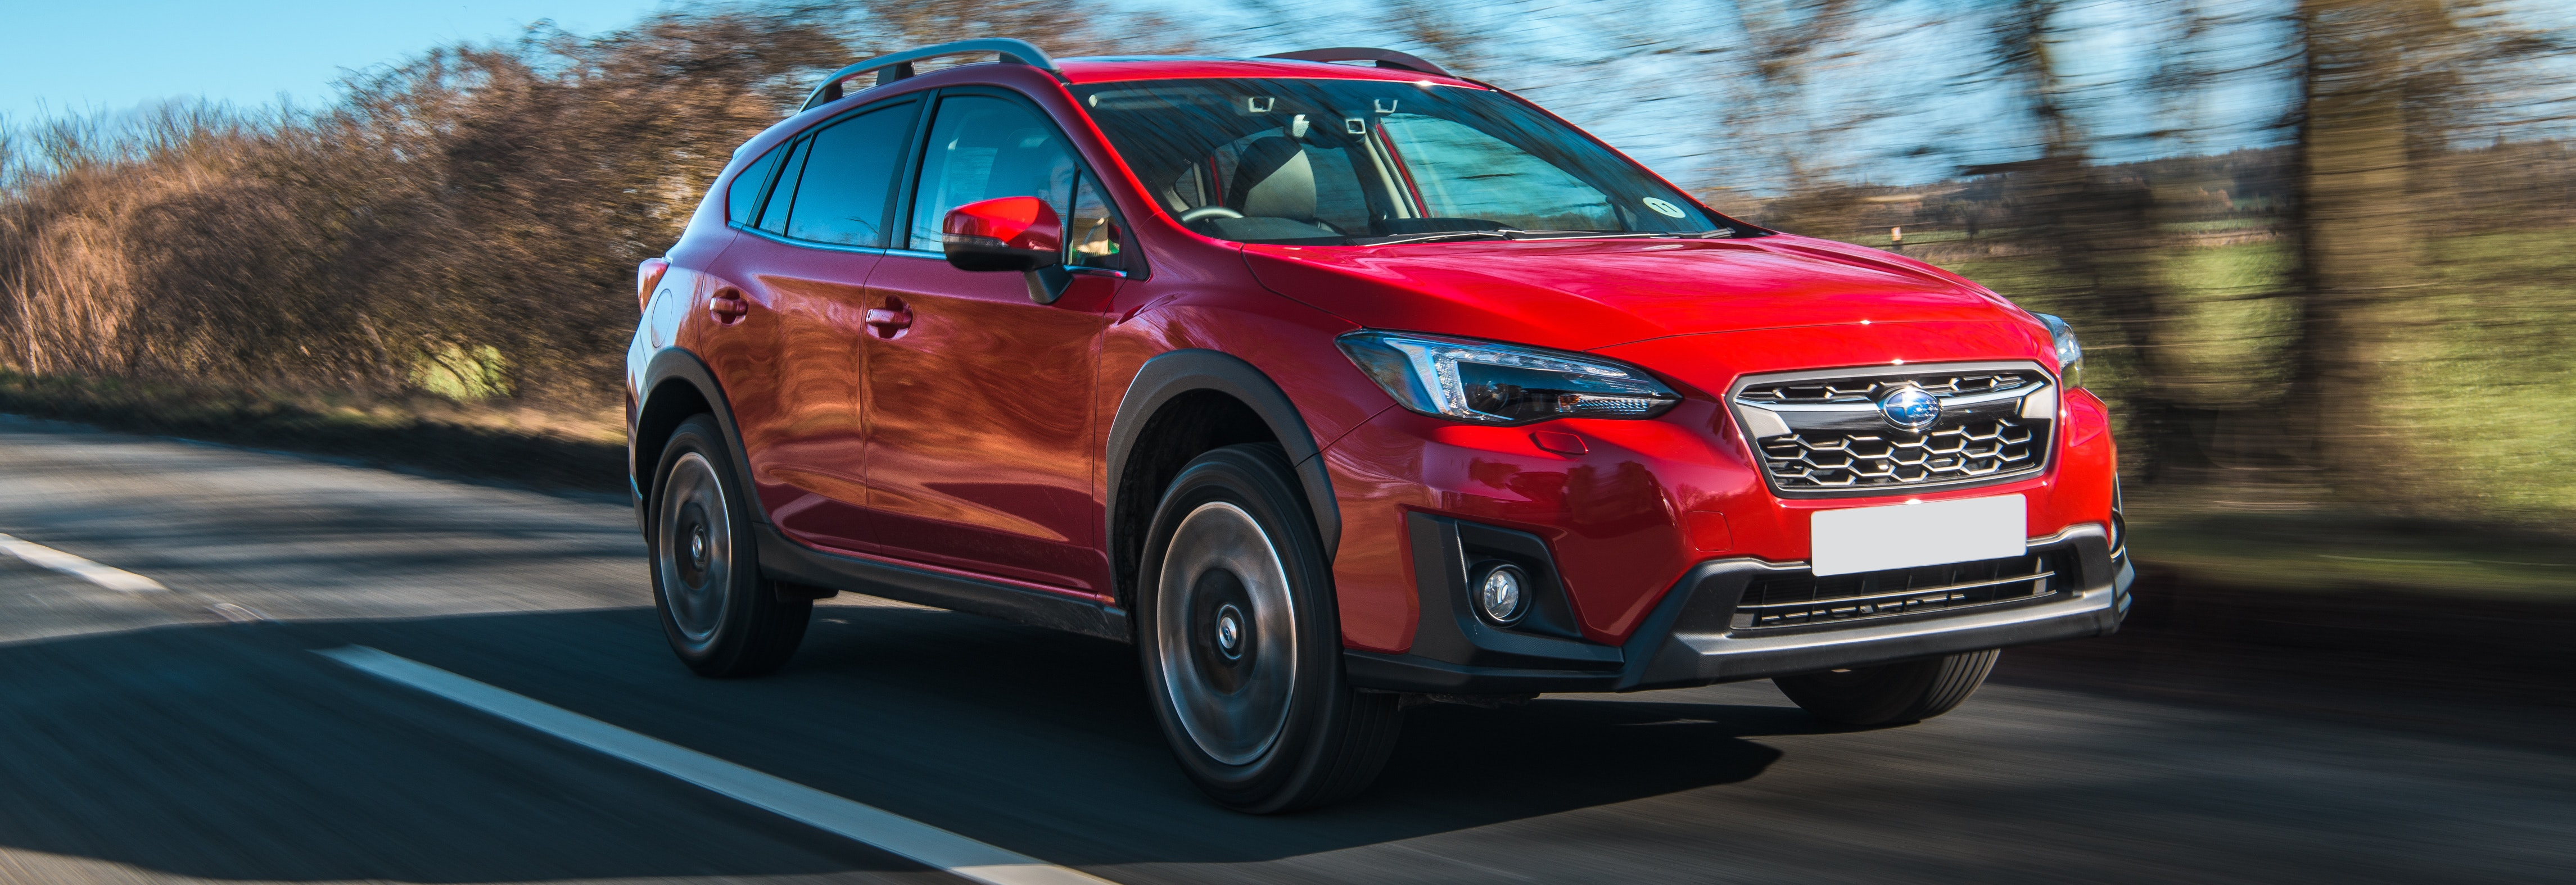 2018 subaru xv red front driving